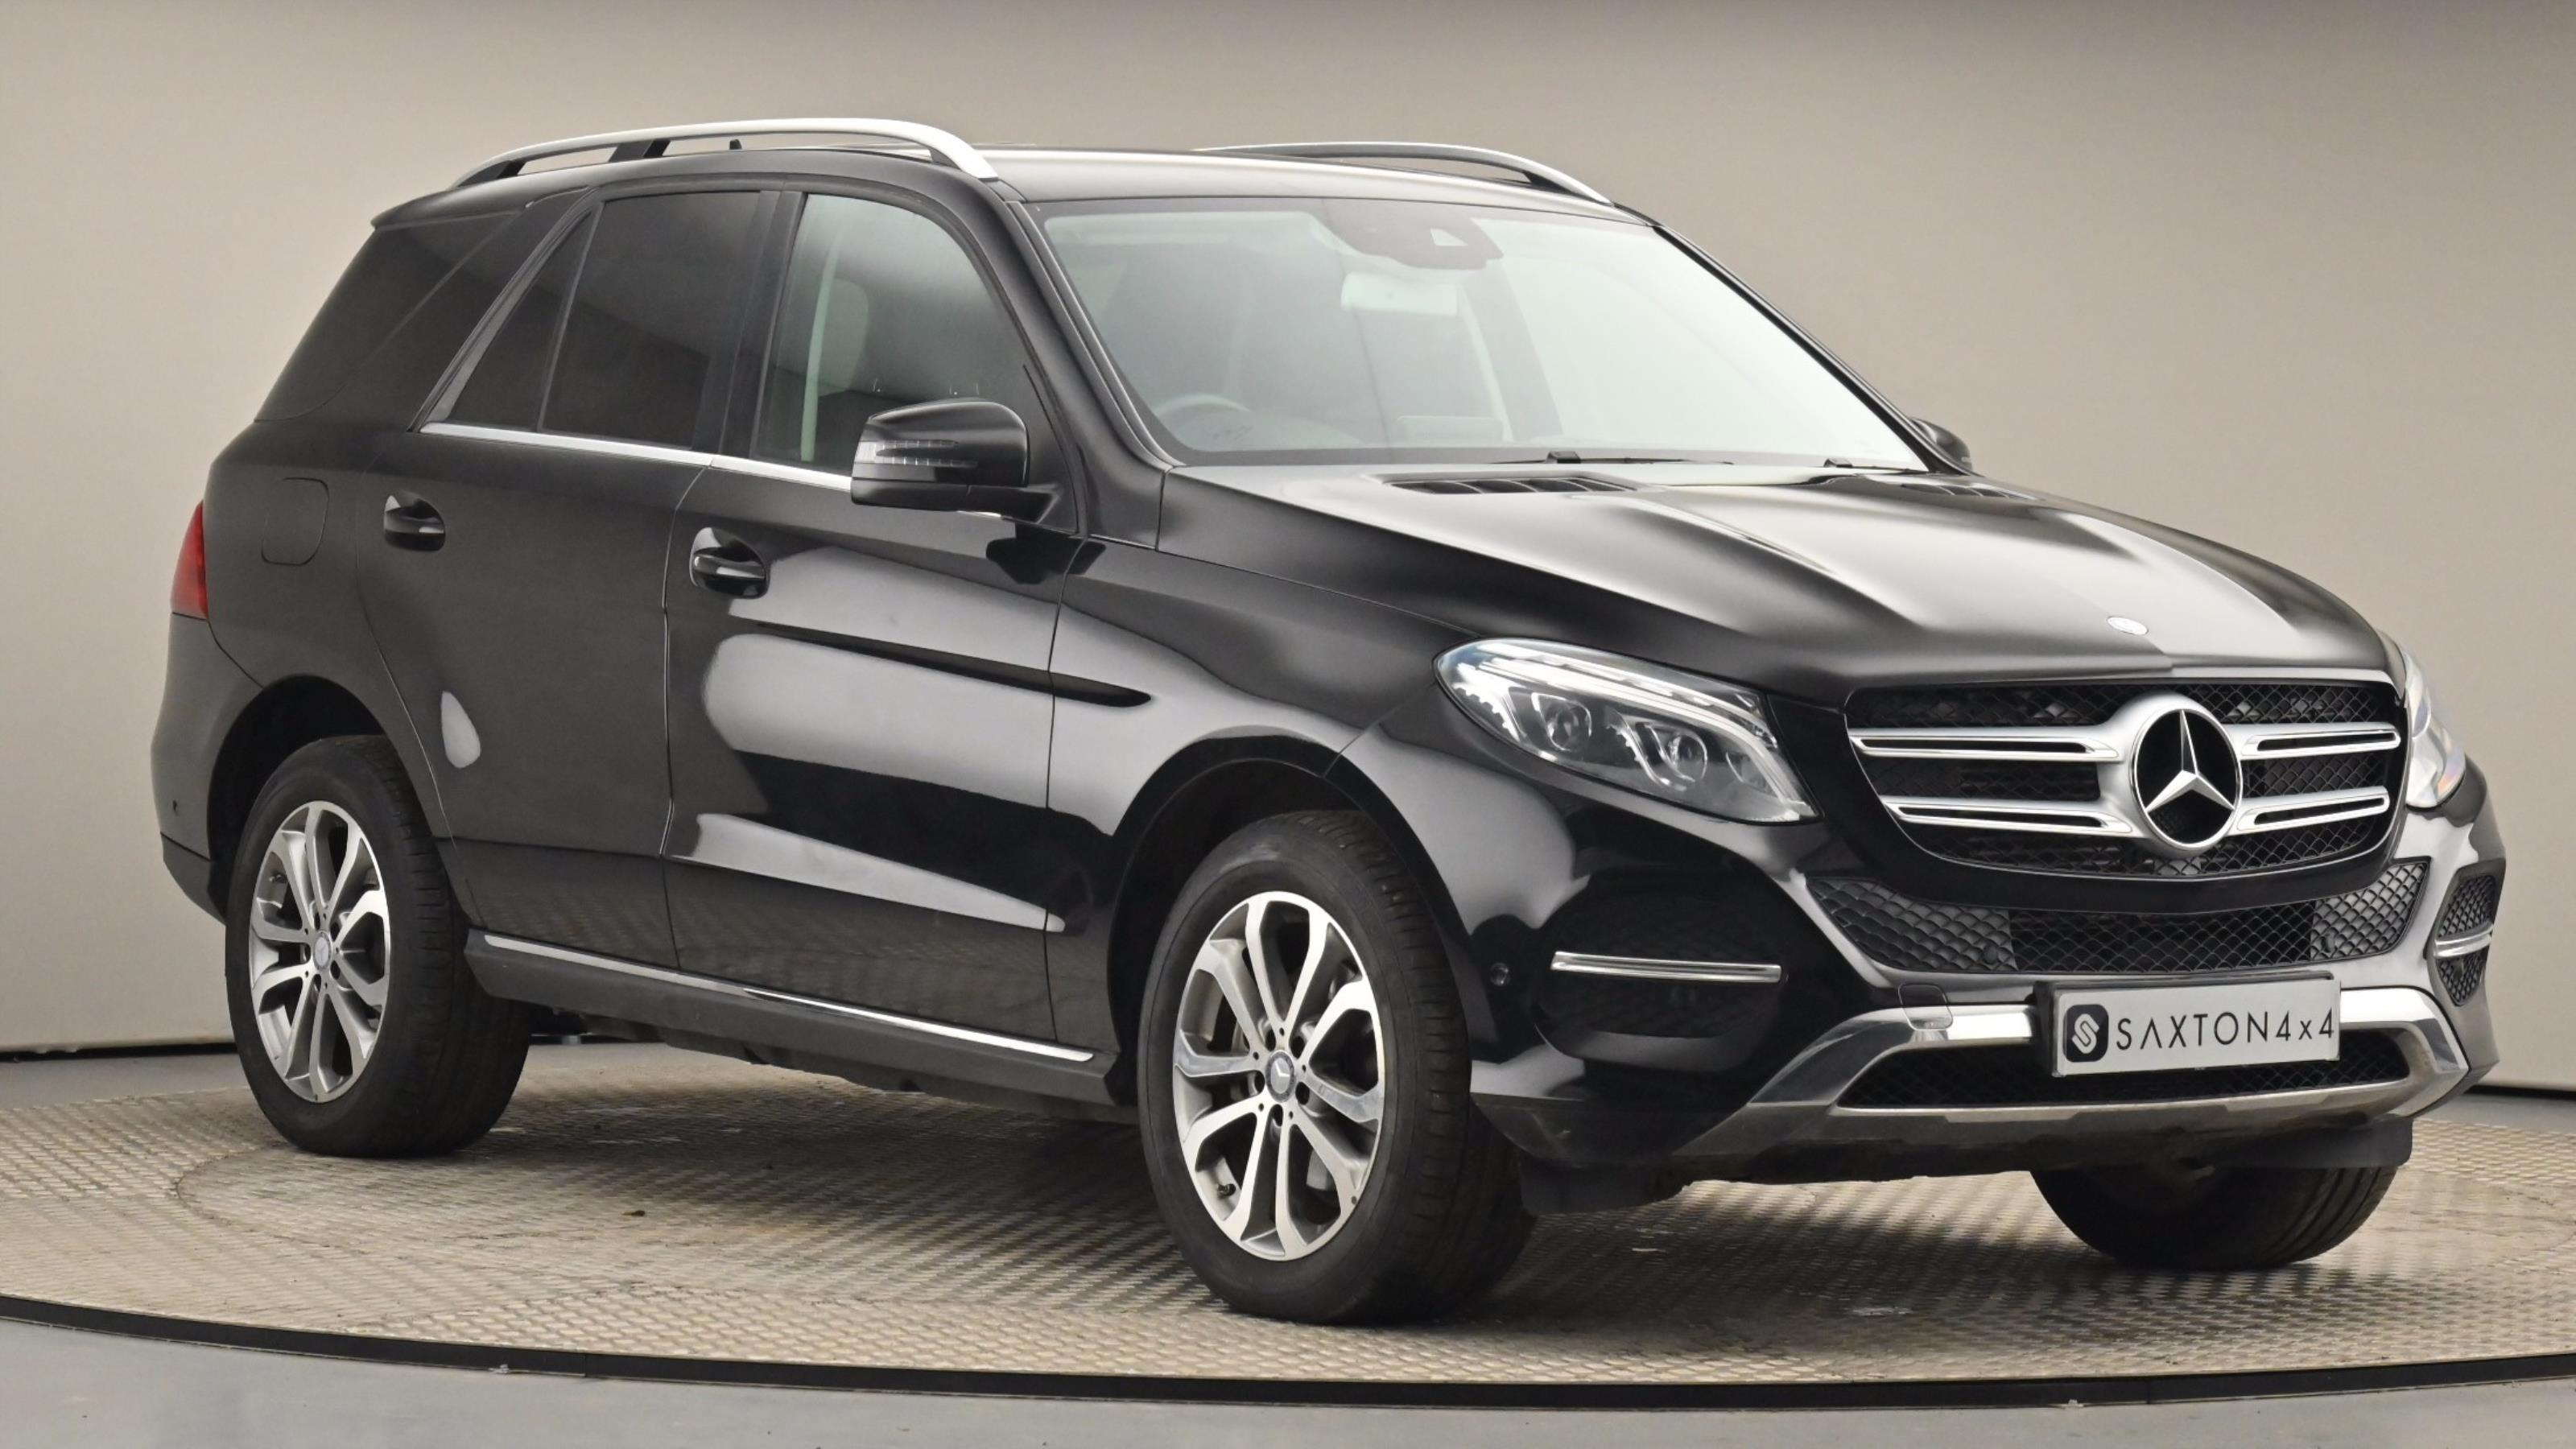 Used 15 Mercedes-Benz GLE GLE 250d 4Matic Sport 5dr 9G-Tronic BLACK at Saxton4x4